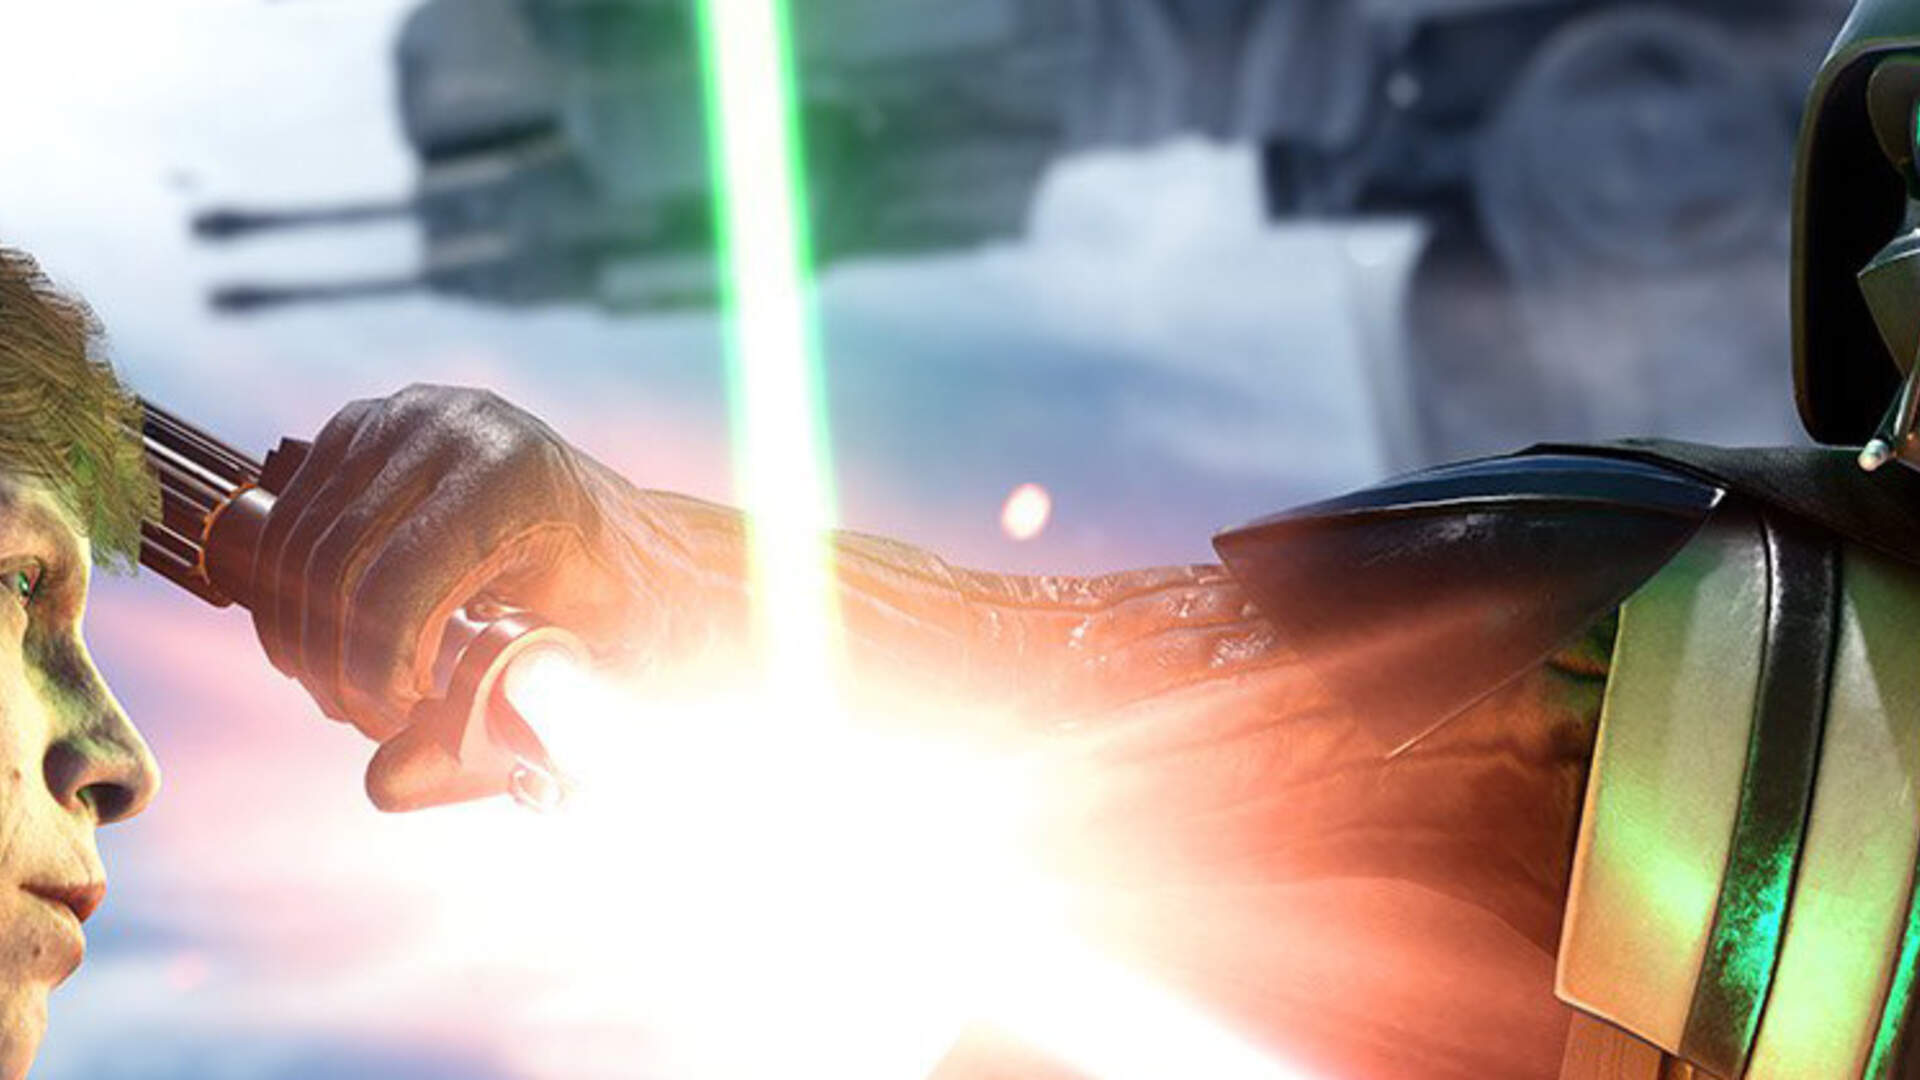 Star Wars Battlefront: How to Play Darth Vader and Luke Skywalker